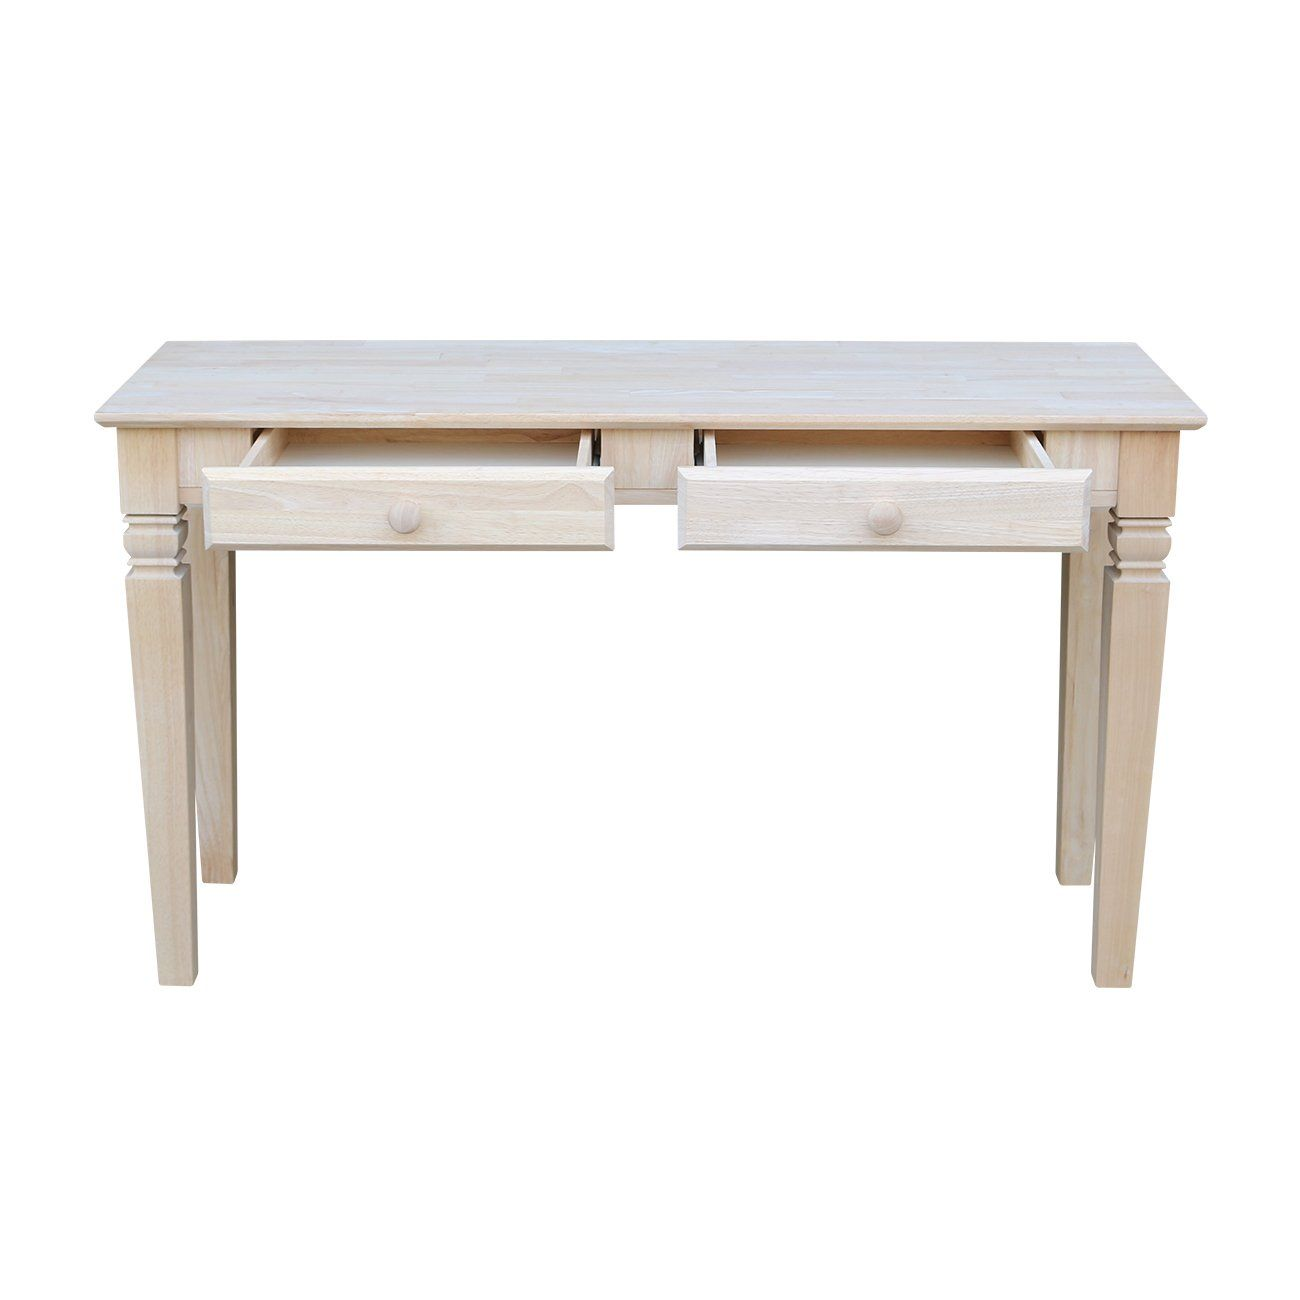 International Concepts Ot60s2 Java Sofa Table With 2 Drawers Unfinished See This Great Product It Is An A Sofa Table Entry Table Diy Living Room Furniture